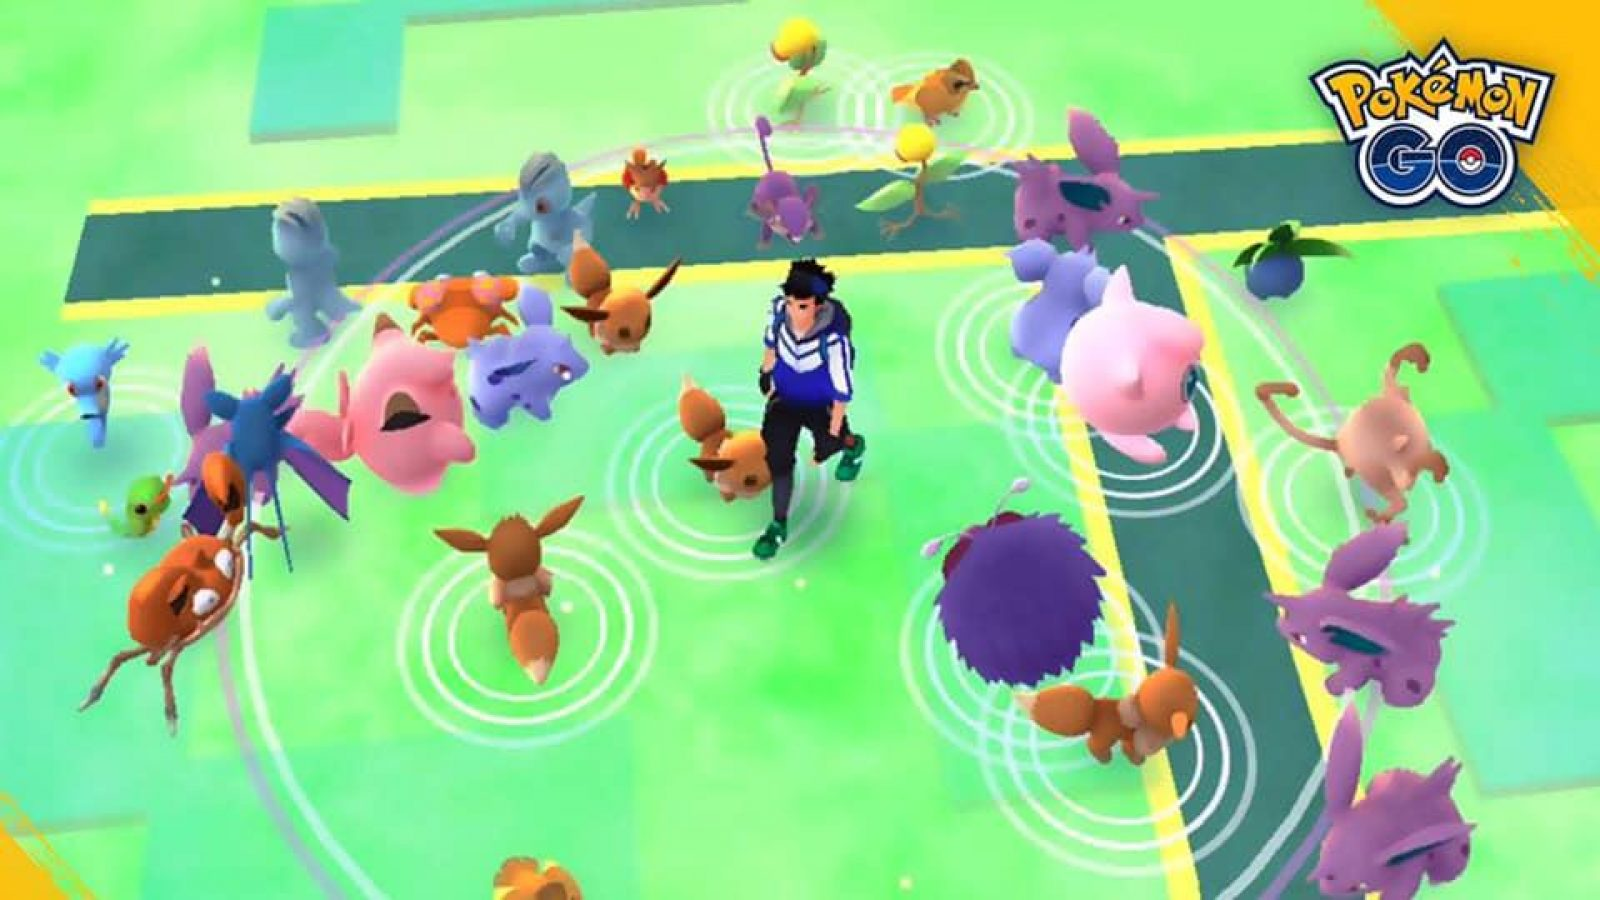 Pokémon Go Players Reporting Worldwide Spawn-Point Change | Player.One